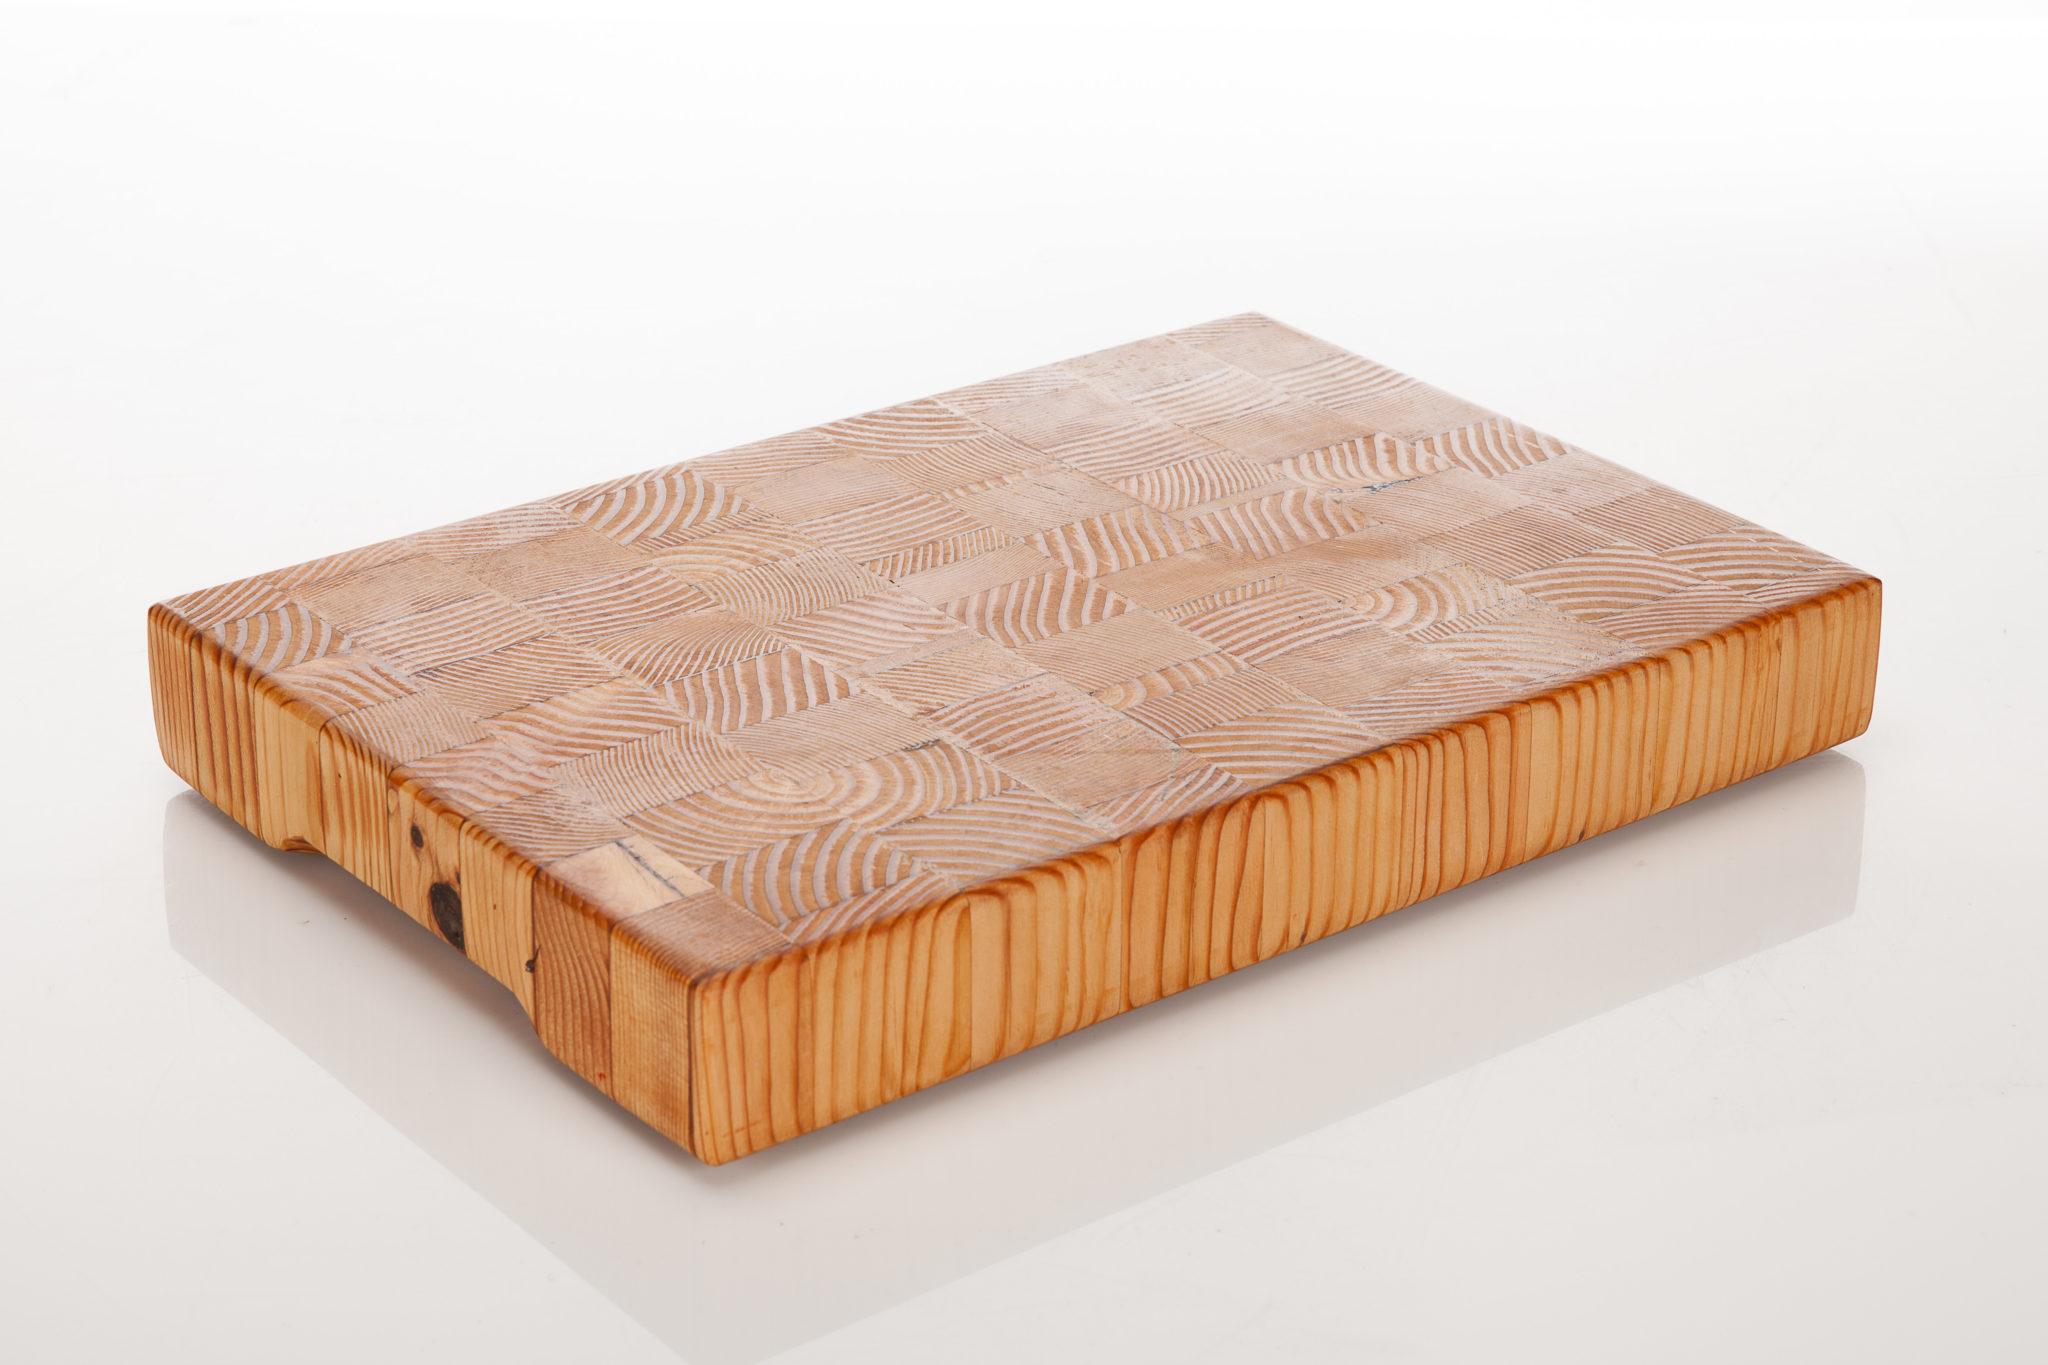 Butcher block board